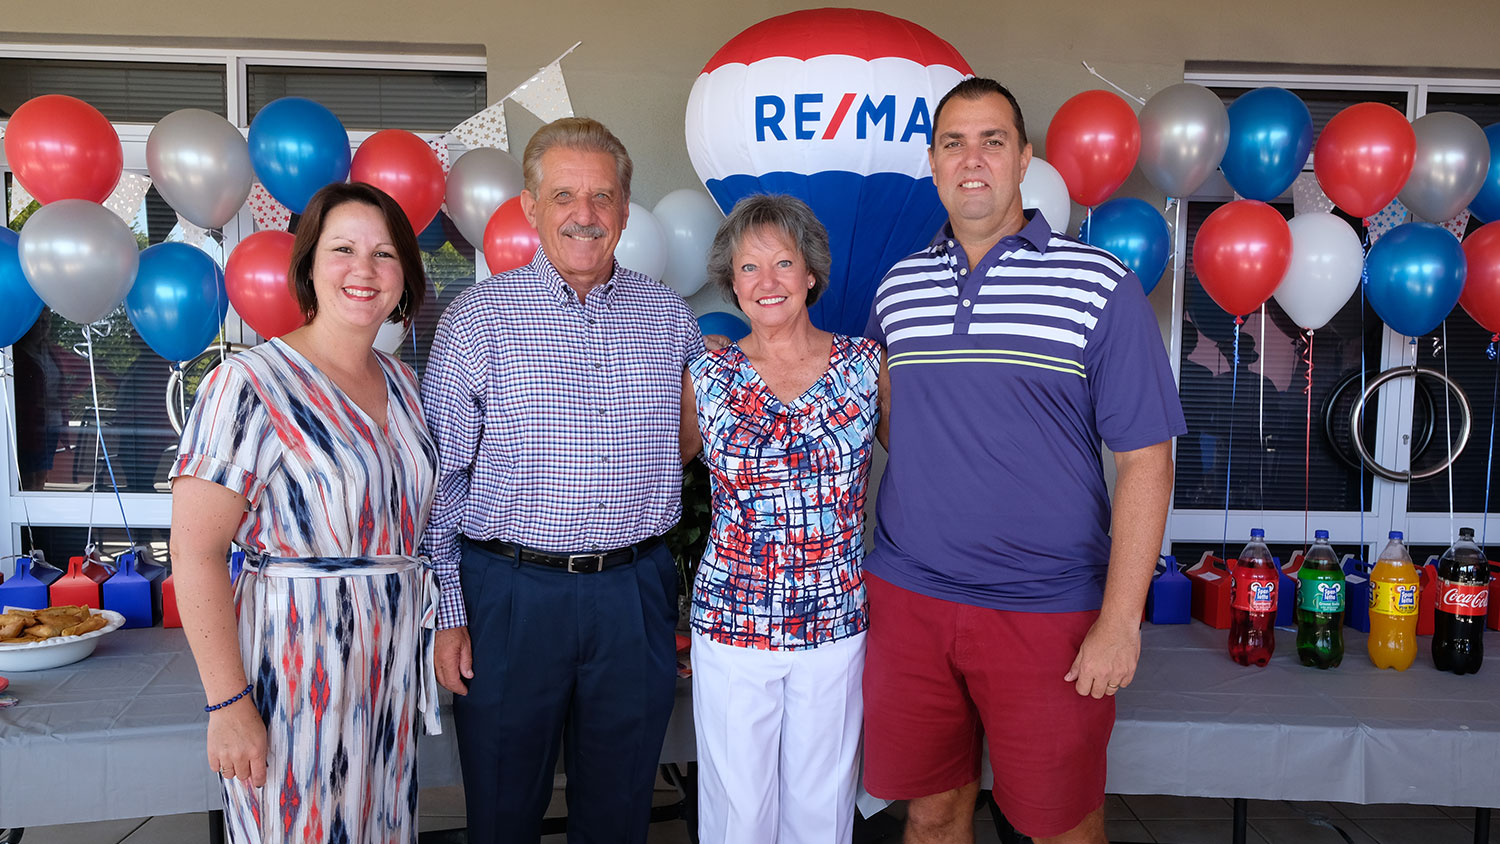 RE/MAX CELEBRATES 25 YEARS IN SOUTH AFRICA